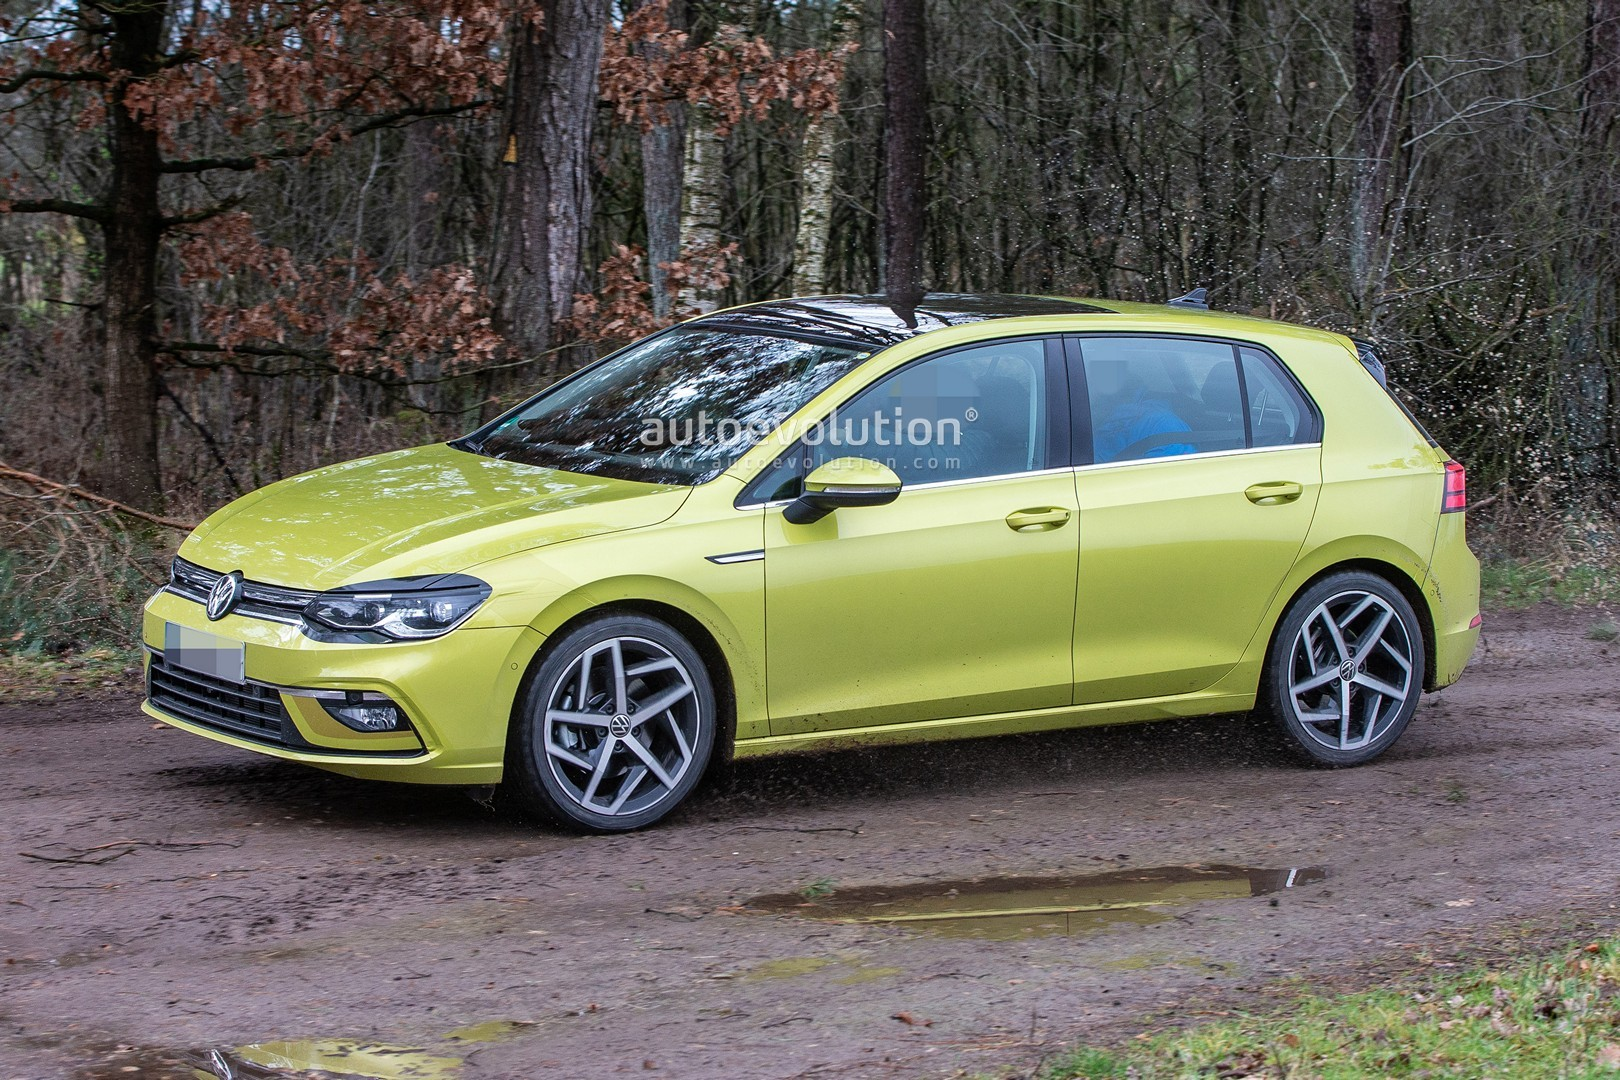 Golf 8 Going On Sale In February 2020, VW Currently Fixing